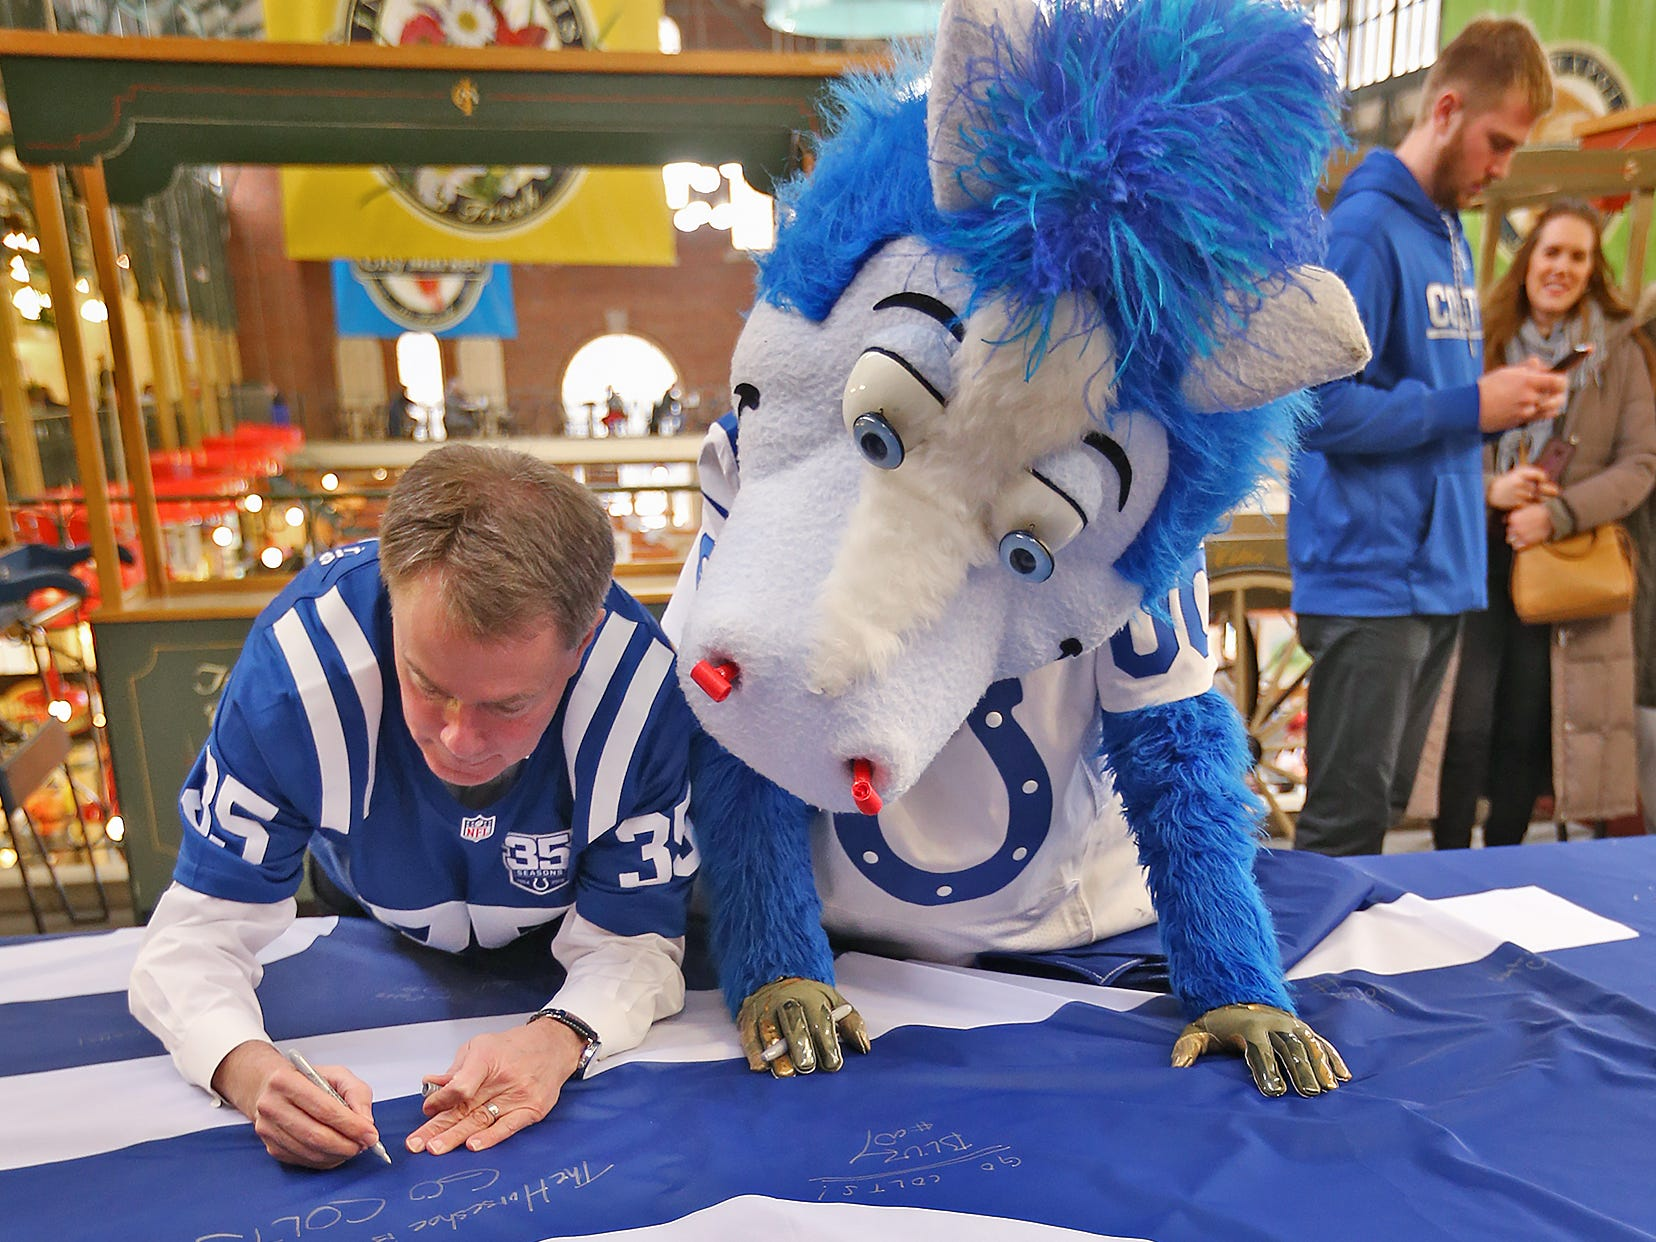 Mayor Joe Hogsett and Colts mascot Blue sign a 1-0 banner for the Colts at City Market, Thursday, Jan. 10, 2019.  The banner will be displayed for the team to see at the airport as they head off to their Kansas City playoff game.